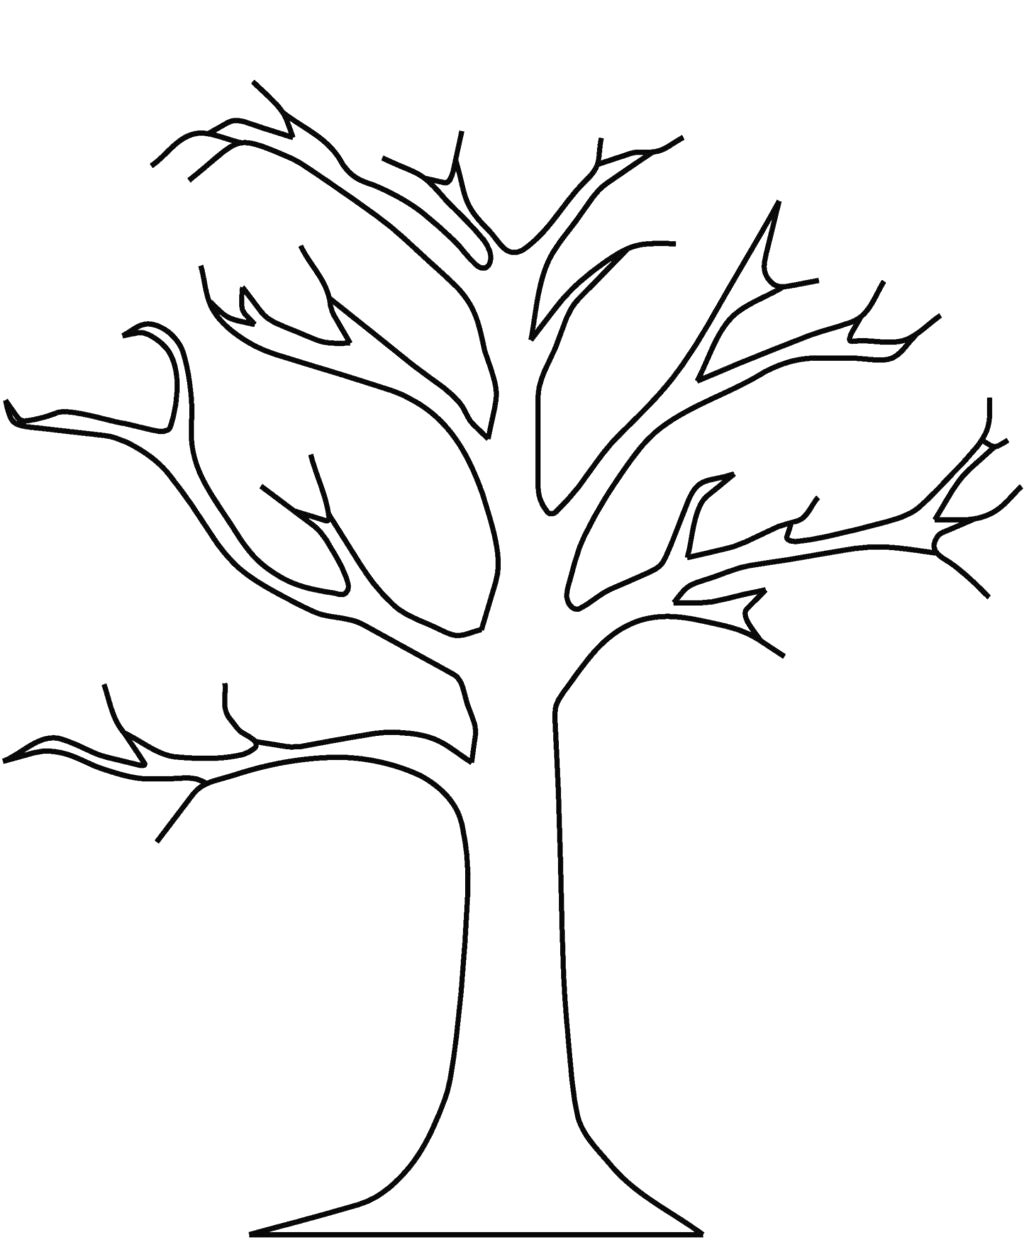 1024x1247 Dead Tree Coloring Page Kids Drawing And Pages Marisa Striking